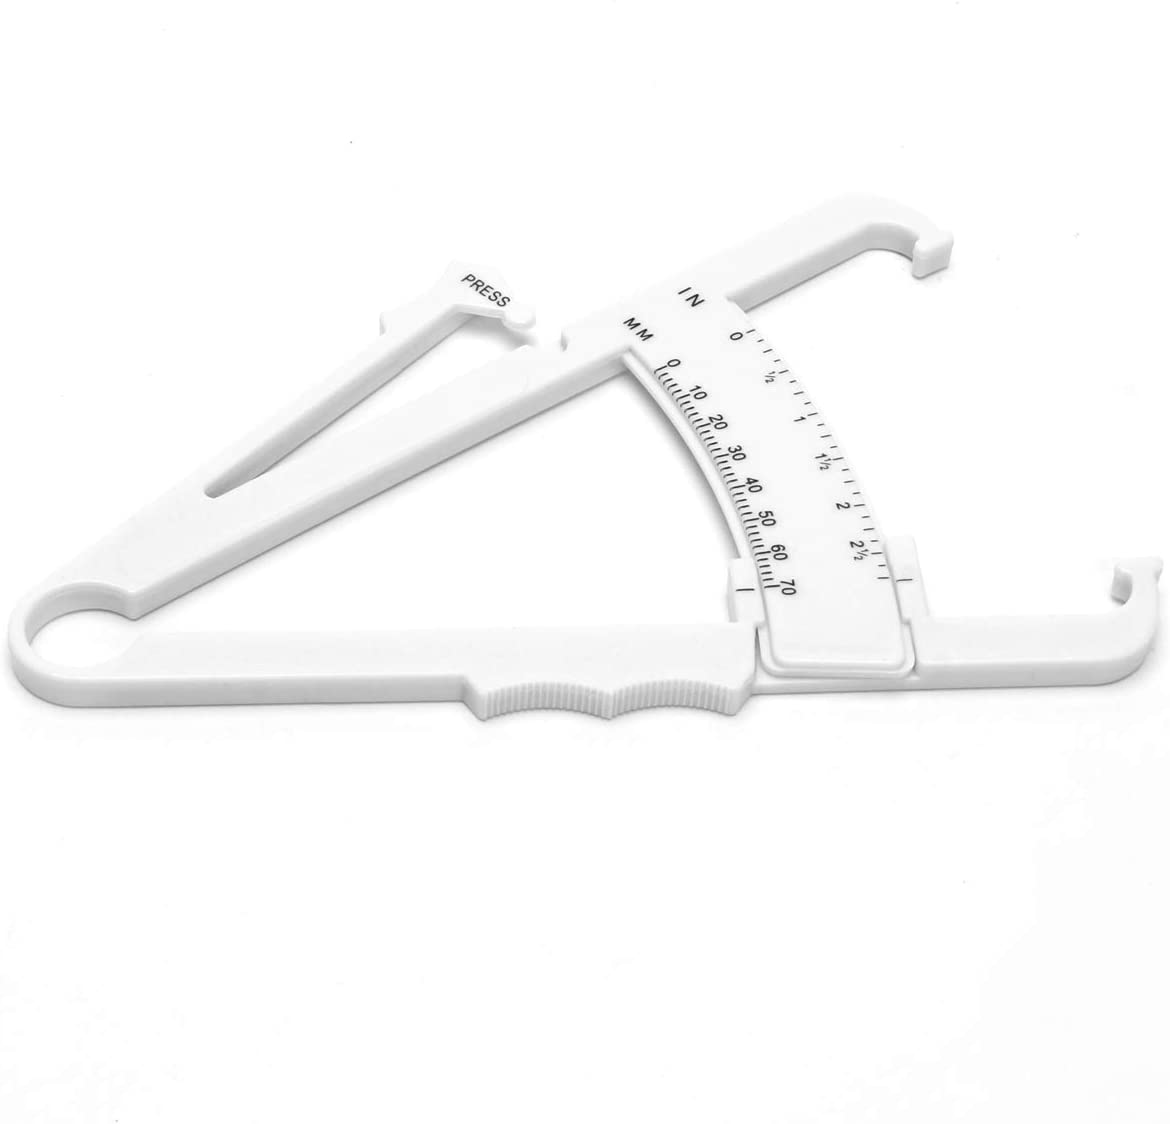 JF-XUAN Vernier Calipers Body Fat Tester Personal Measure Tool Plastic Analysis Instrument 0-70mm Caliper Fitness Accessories